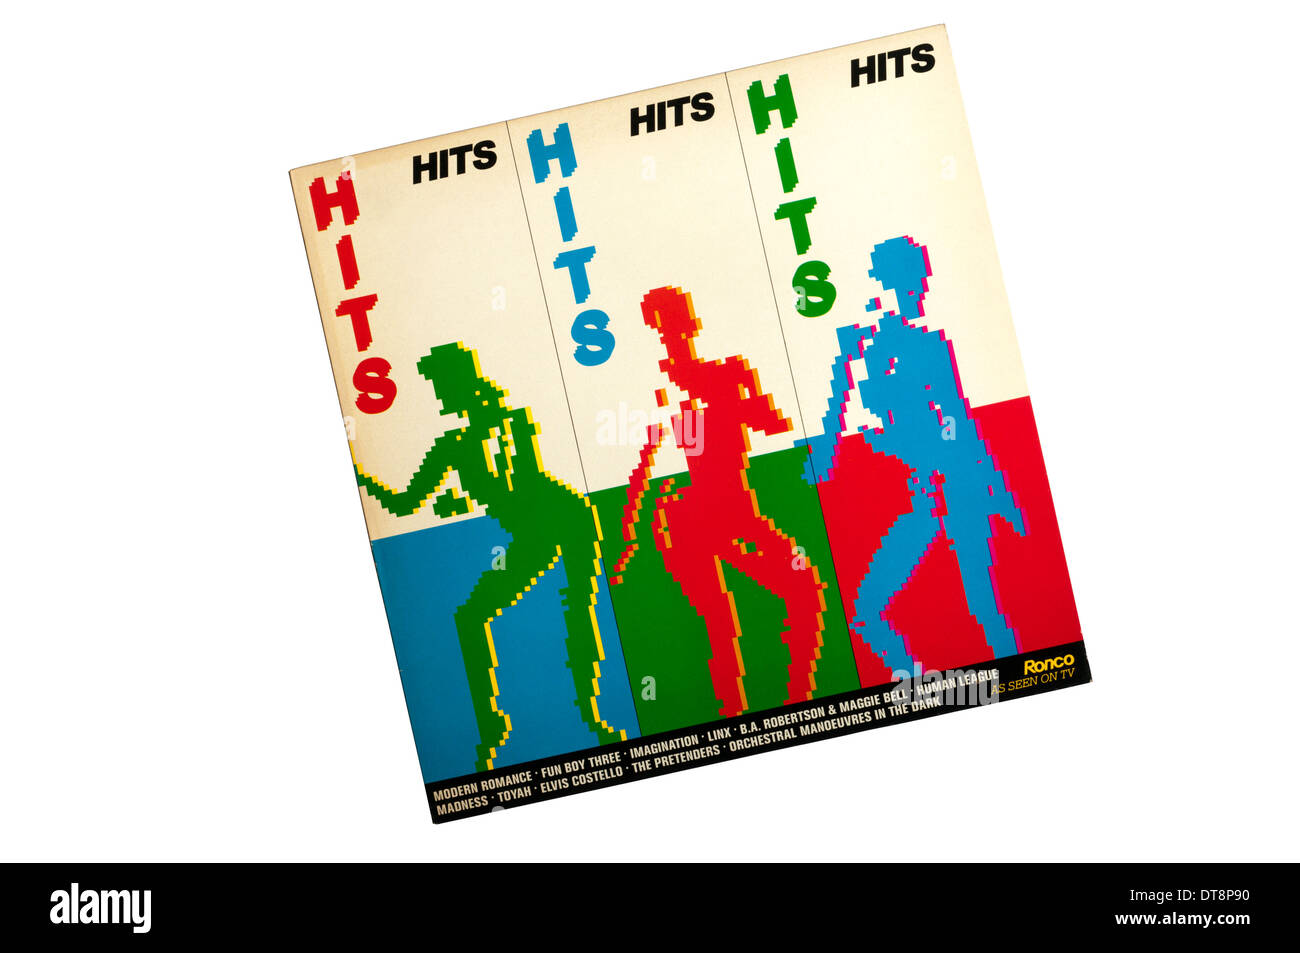 Hits Hits Hits compilation album released by Ronco in 1981. - Stock Image